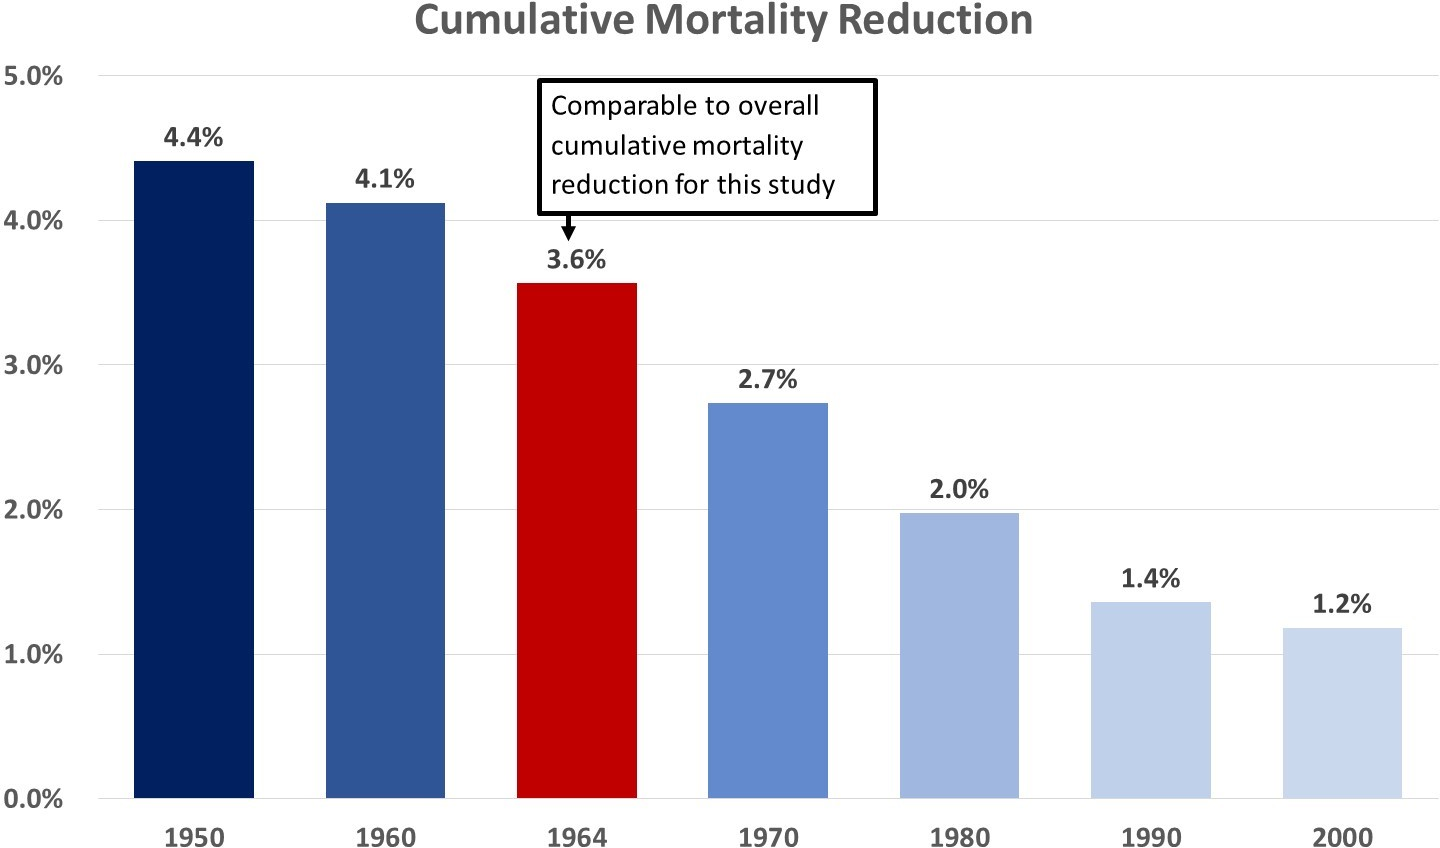 Projected cumulative mortality reduction for single birth cohorts.